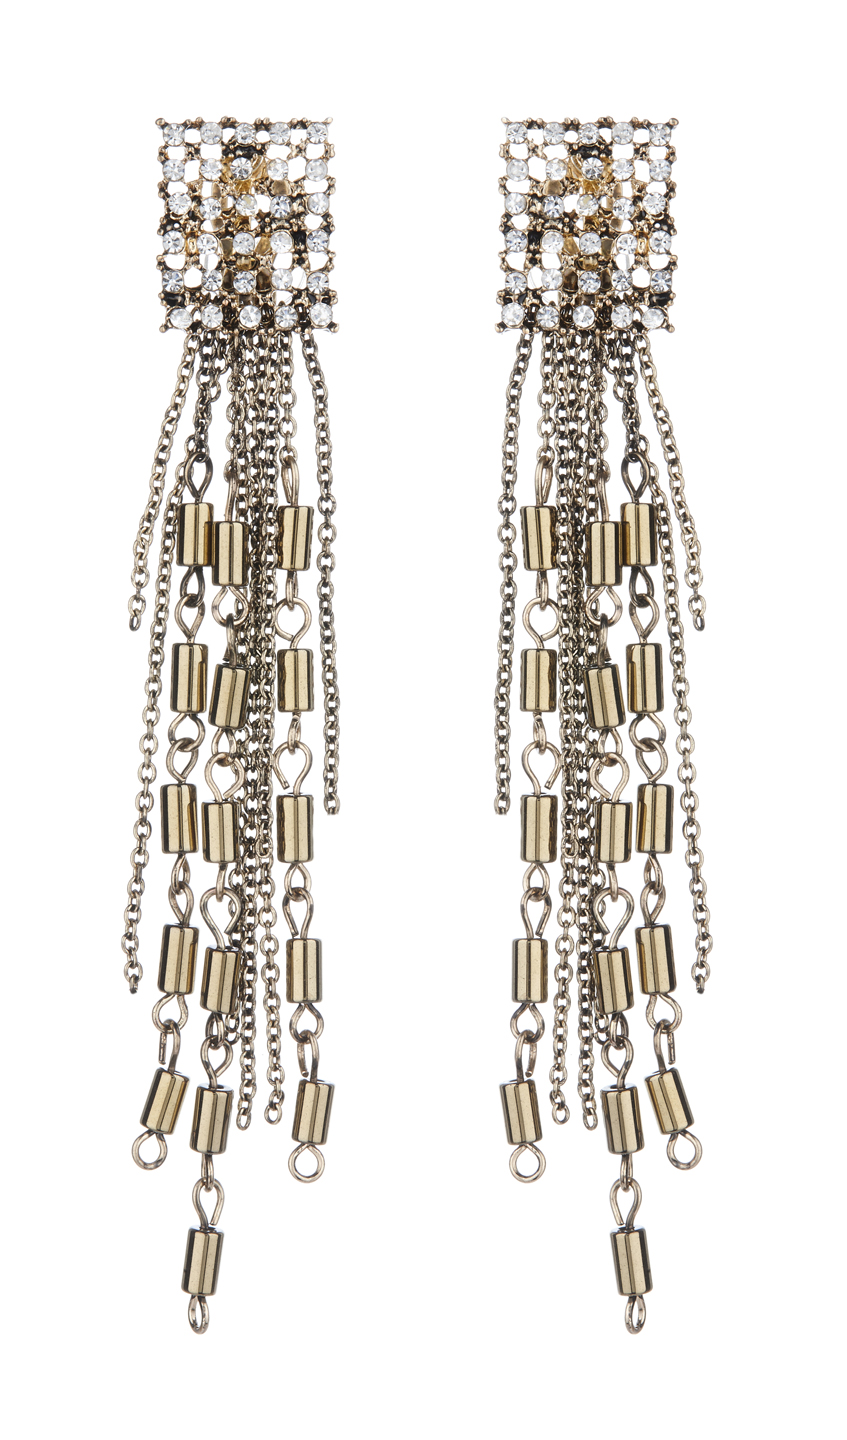 Clip On Earrings - Bettina - antique gold earring with crystals and a chain fringe